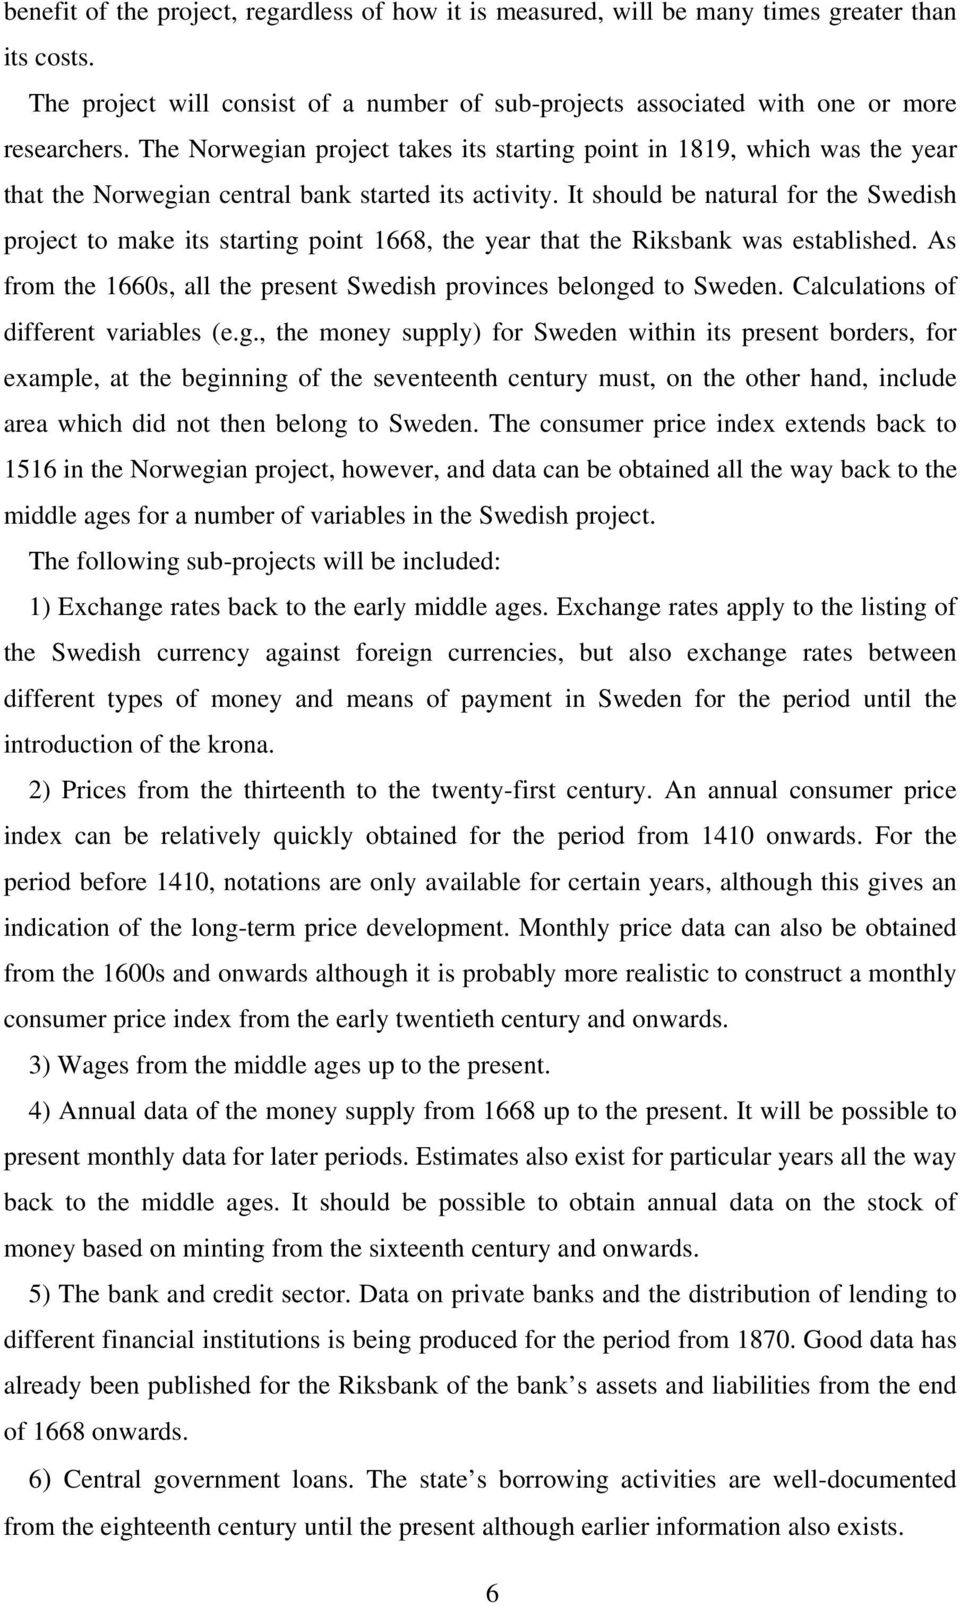 It should be natural for the Swedish project to make its starting point 1668, the year that the Riksbank was established. As from the 1660s, all the present Swedish provinces belonged to Sweden.